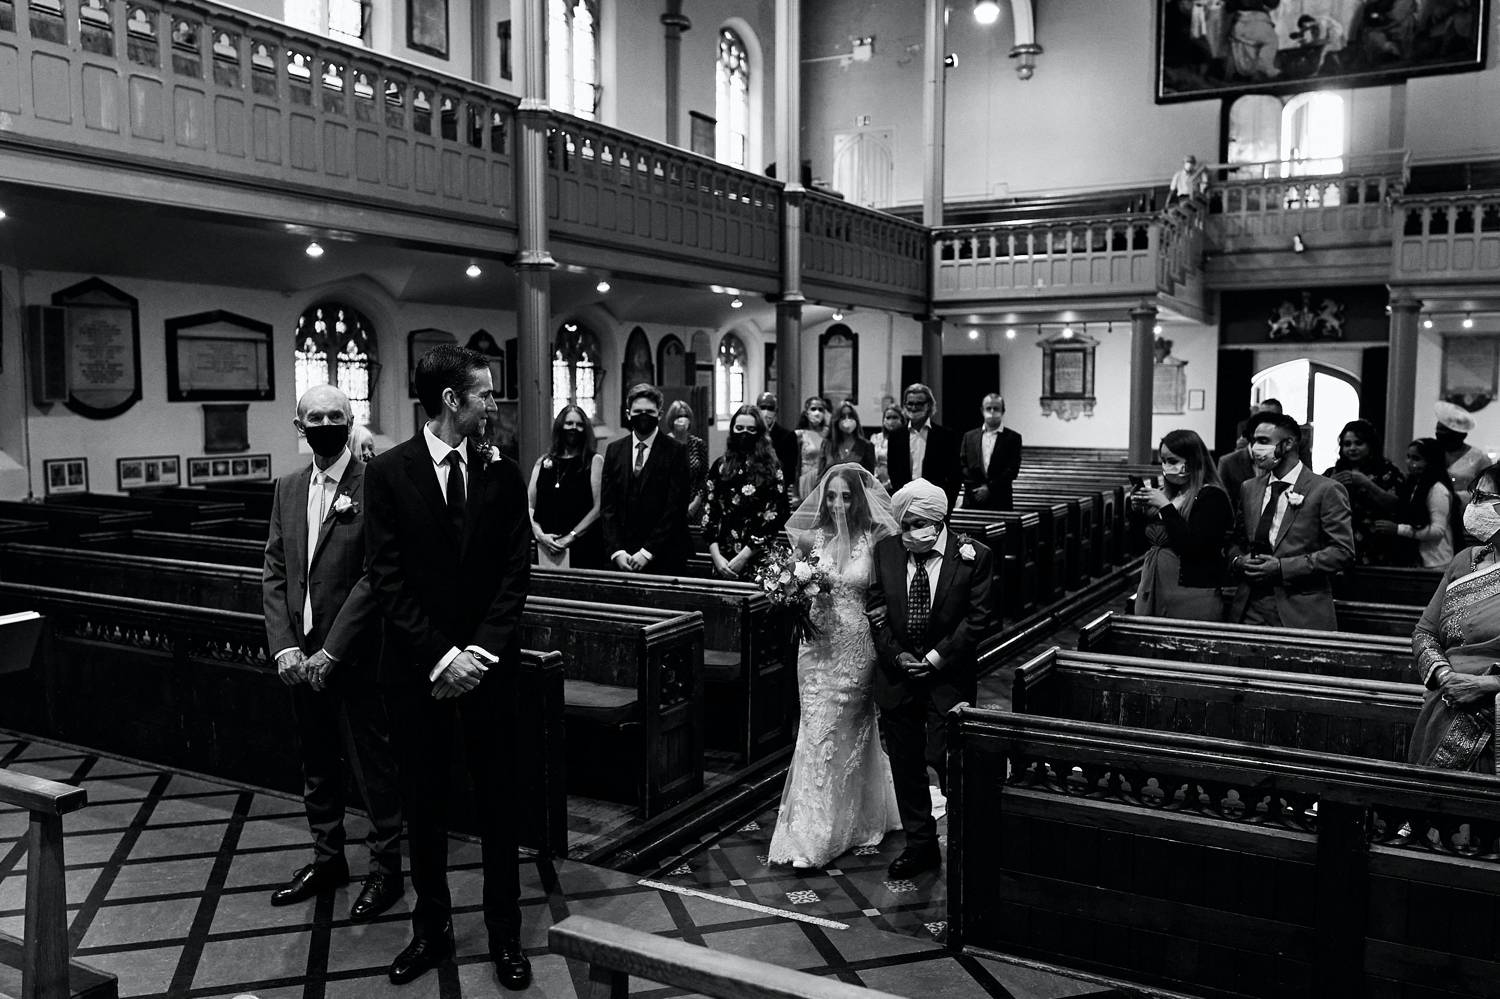 2020 Photographers are Resilient: a black and white photograph of a bride entering the church with her father, who wears a face mask.